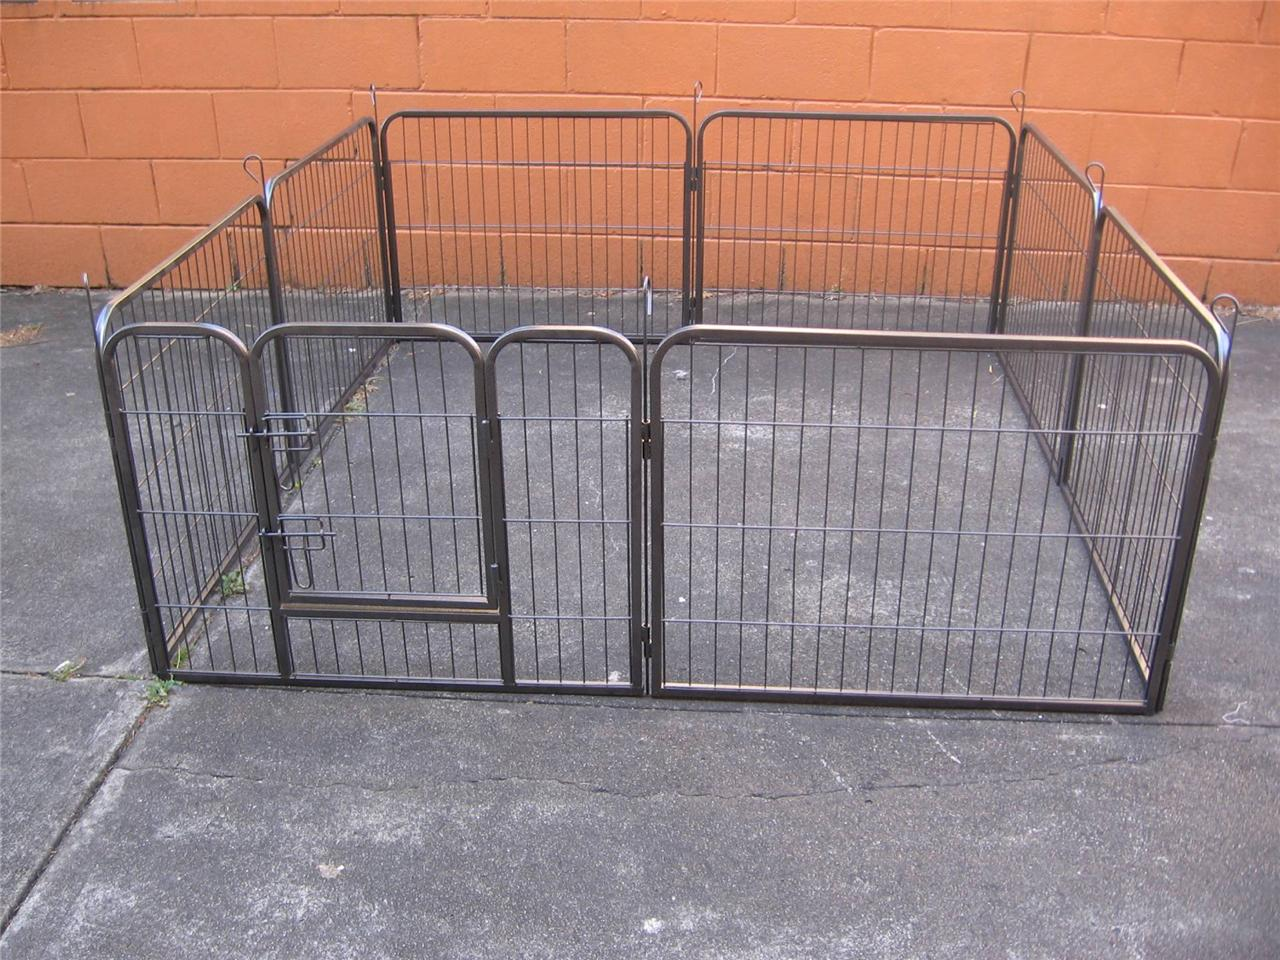 Brand new pet dog exercise enclosure fence play pen run for Dog fence enclosure